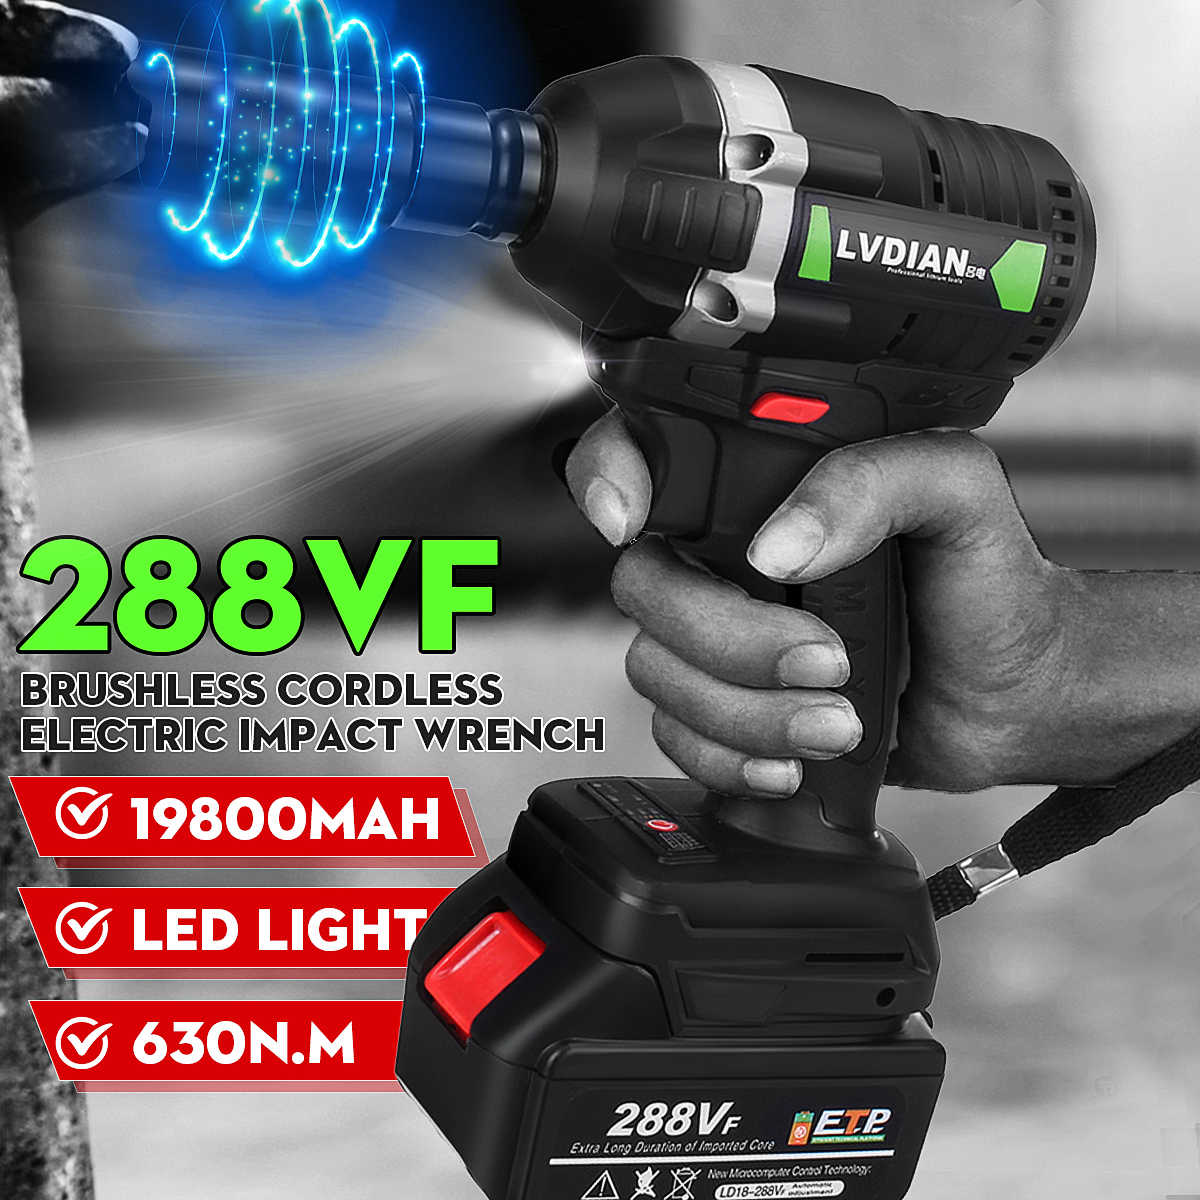 "2020 New 110-240V 288VF 630N.m 1/2"" Brushless LED Cordless Electric Impact Wrench Brush With 1X 19800mAH Li-ion Battery"